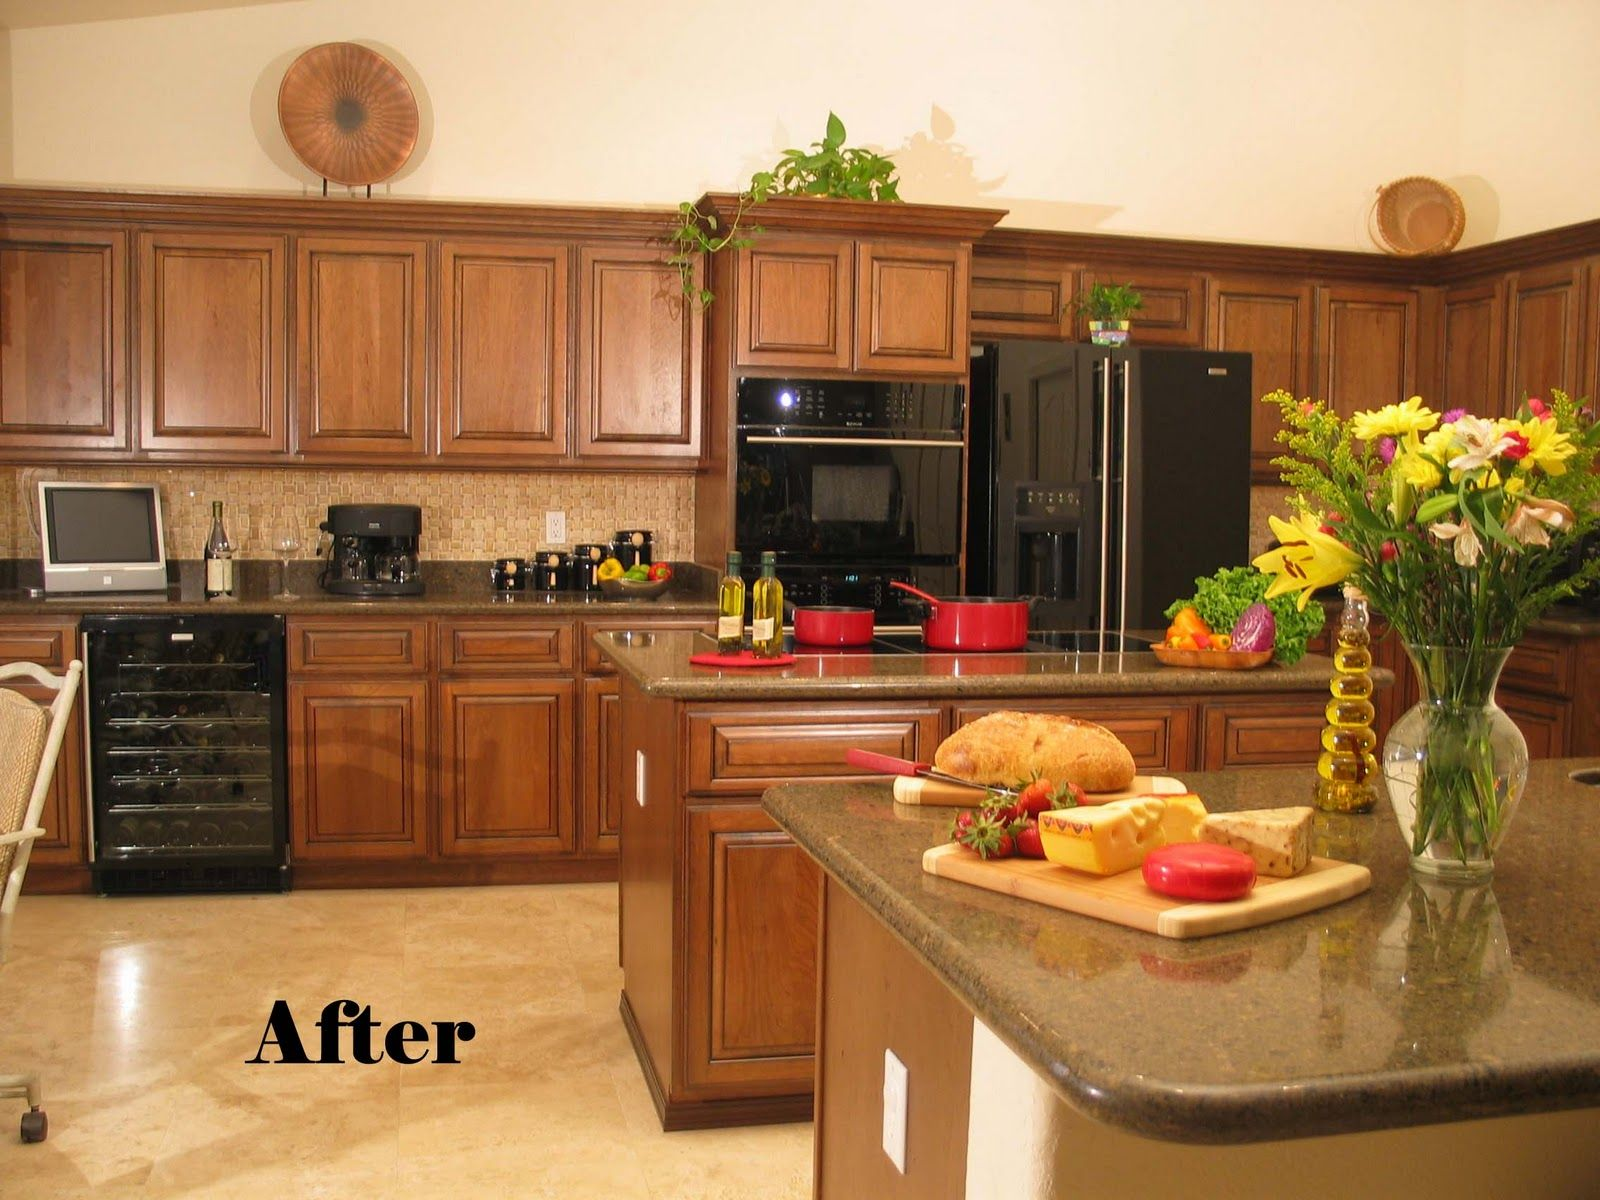 Kitchen Cabinets Kitchen Refacing Resurfacing Is Taking Your Existing Kitchen Cabinet Best Kitchen Cabinets Cheap Kitchen Cabinets Replacing Kitchen Cabinets